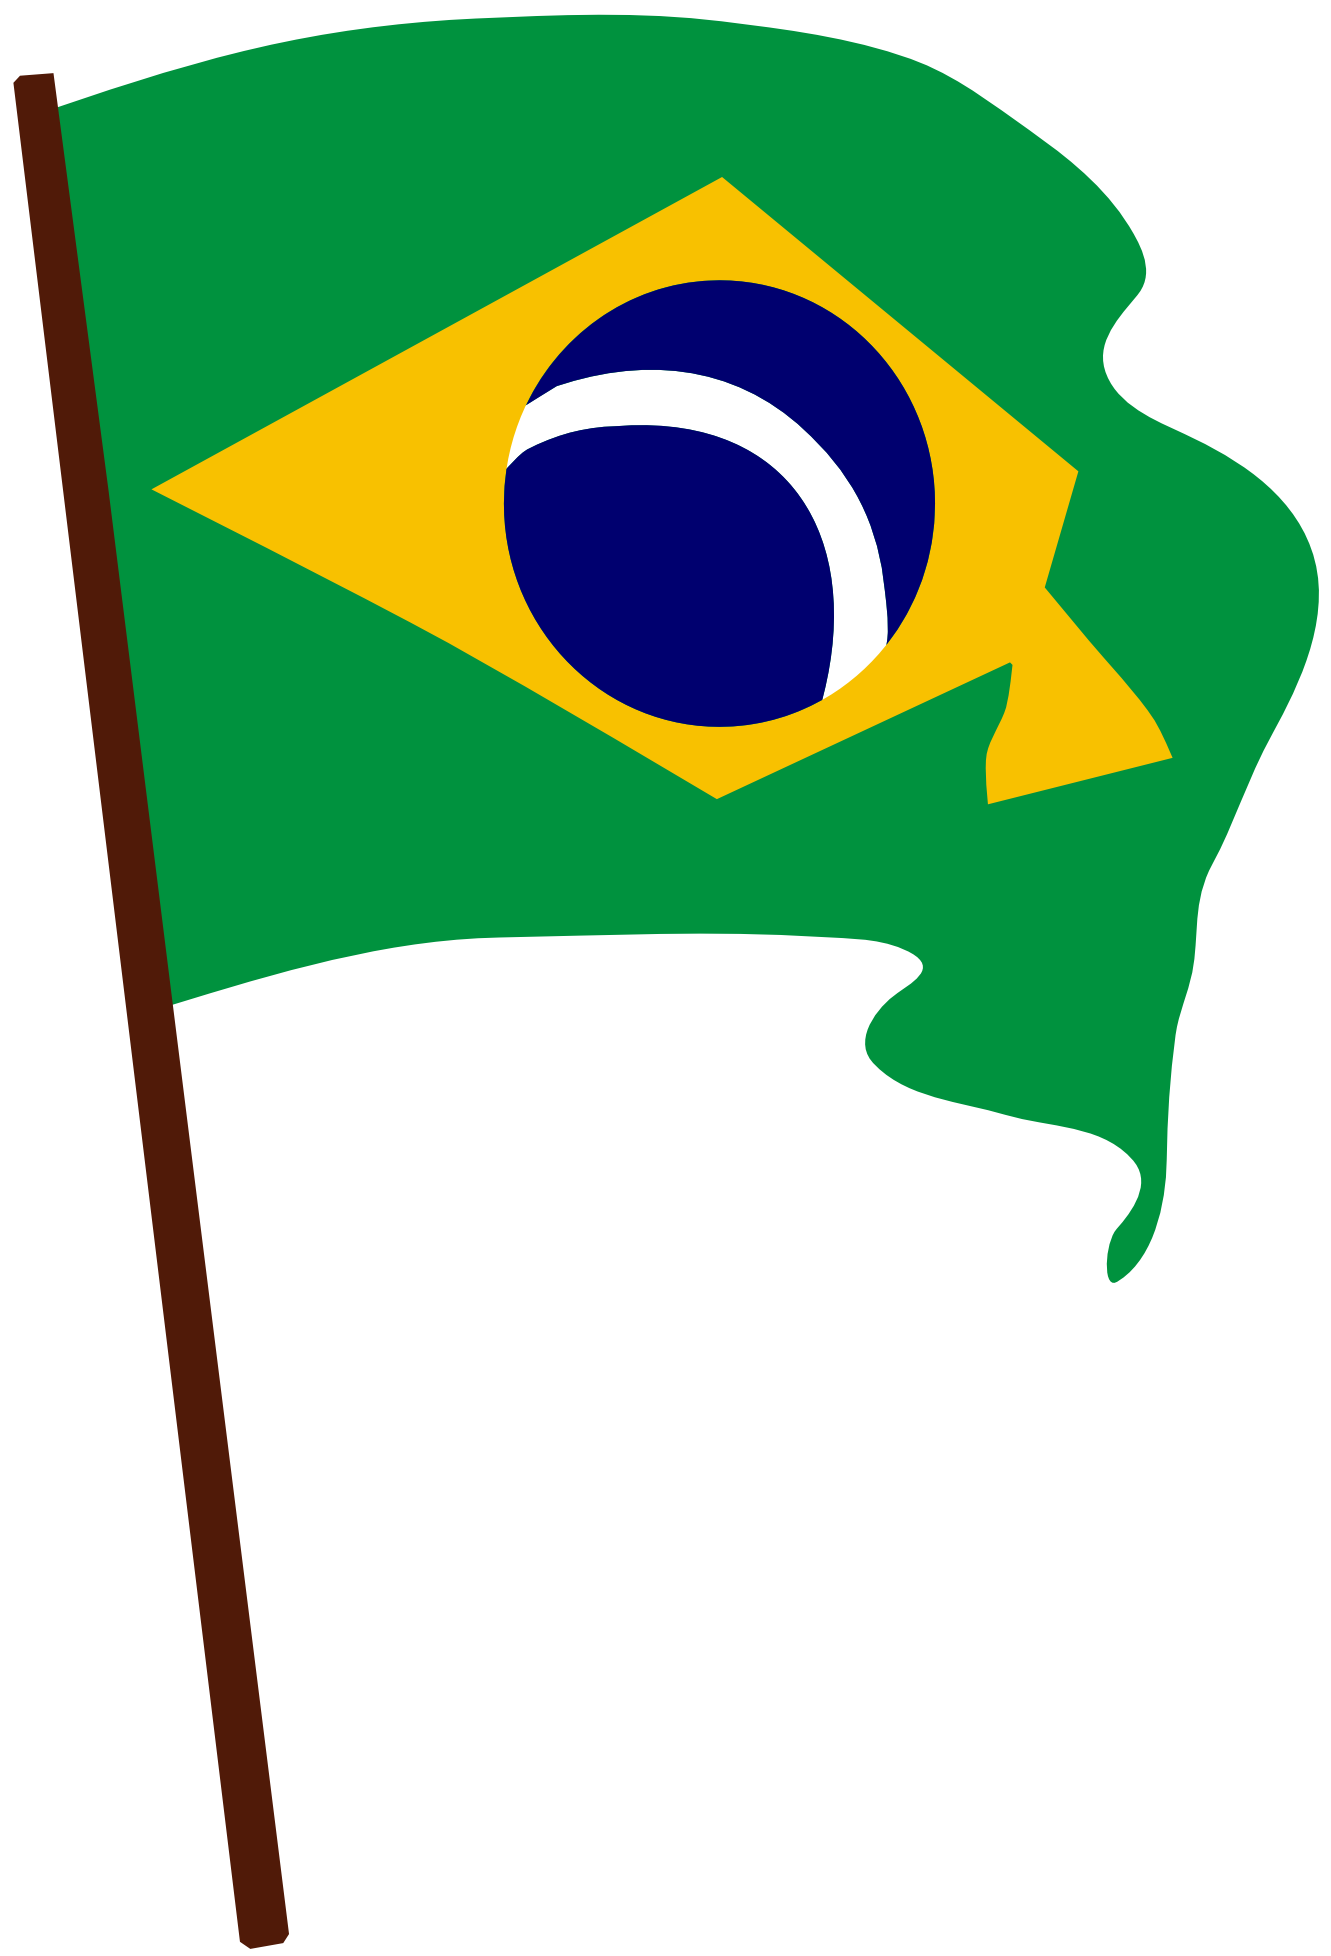 Brasil bandeira clipart image library Imagens bandeira do brasil clipart images gallery for free download ... image library